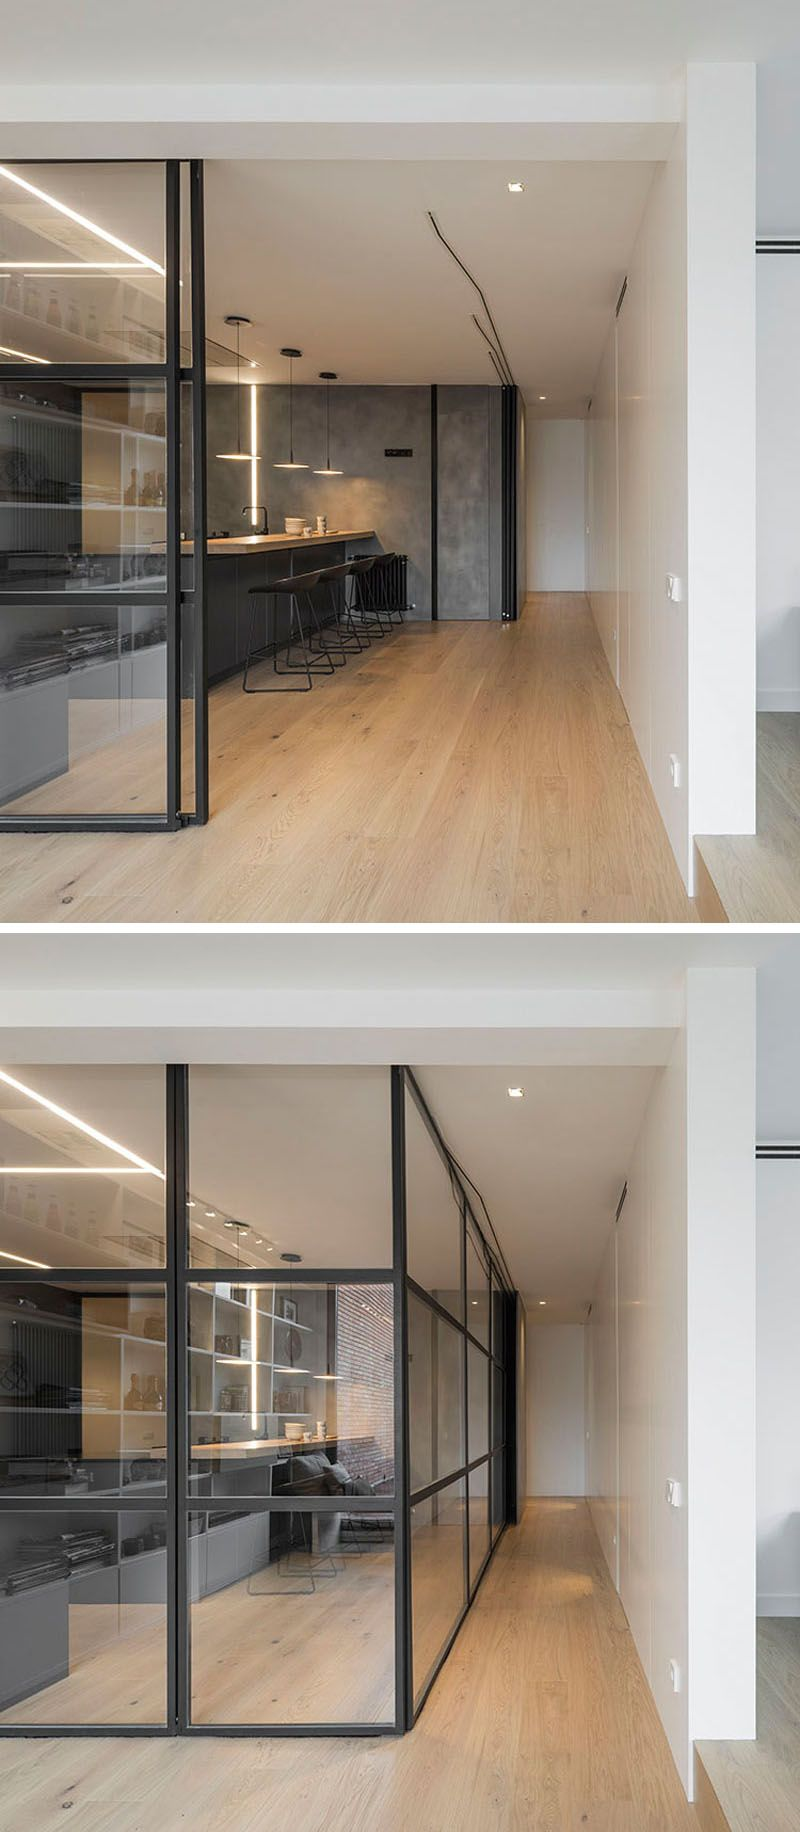 Photo of Susanna Cots Has Designed The Interiors Of A Large Apartment In Barcelona